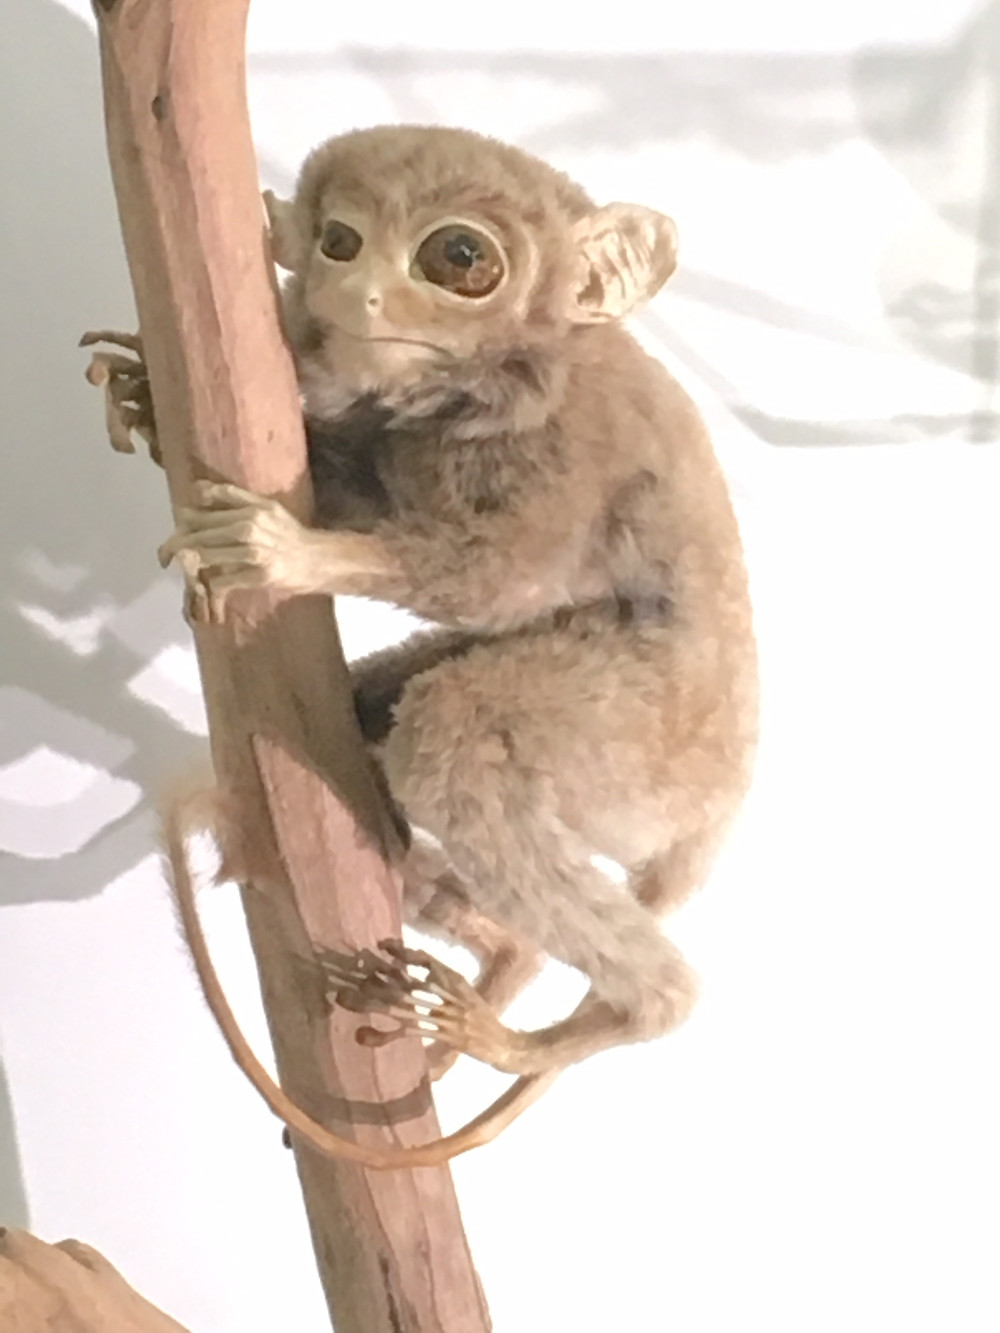 The Tarsier. Probably. Museum of Zoology, Cambridge